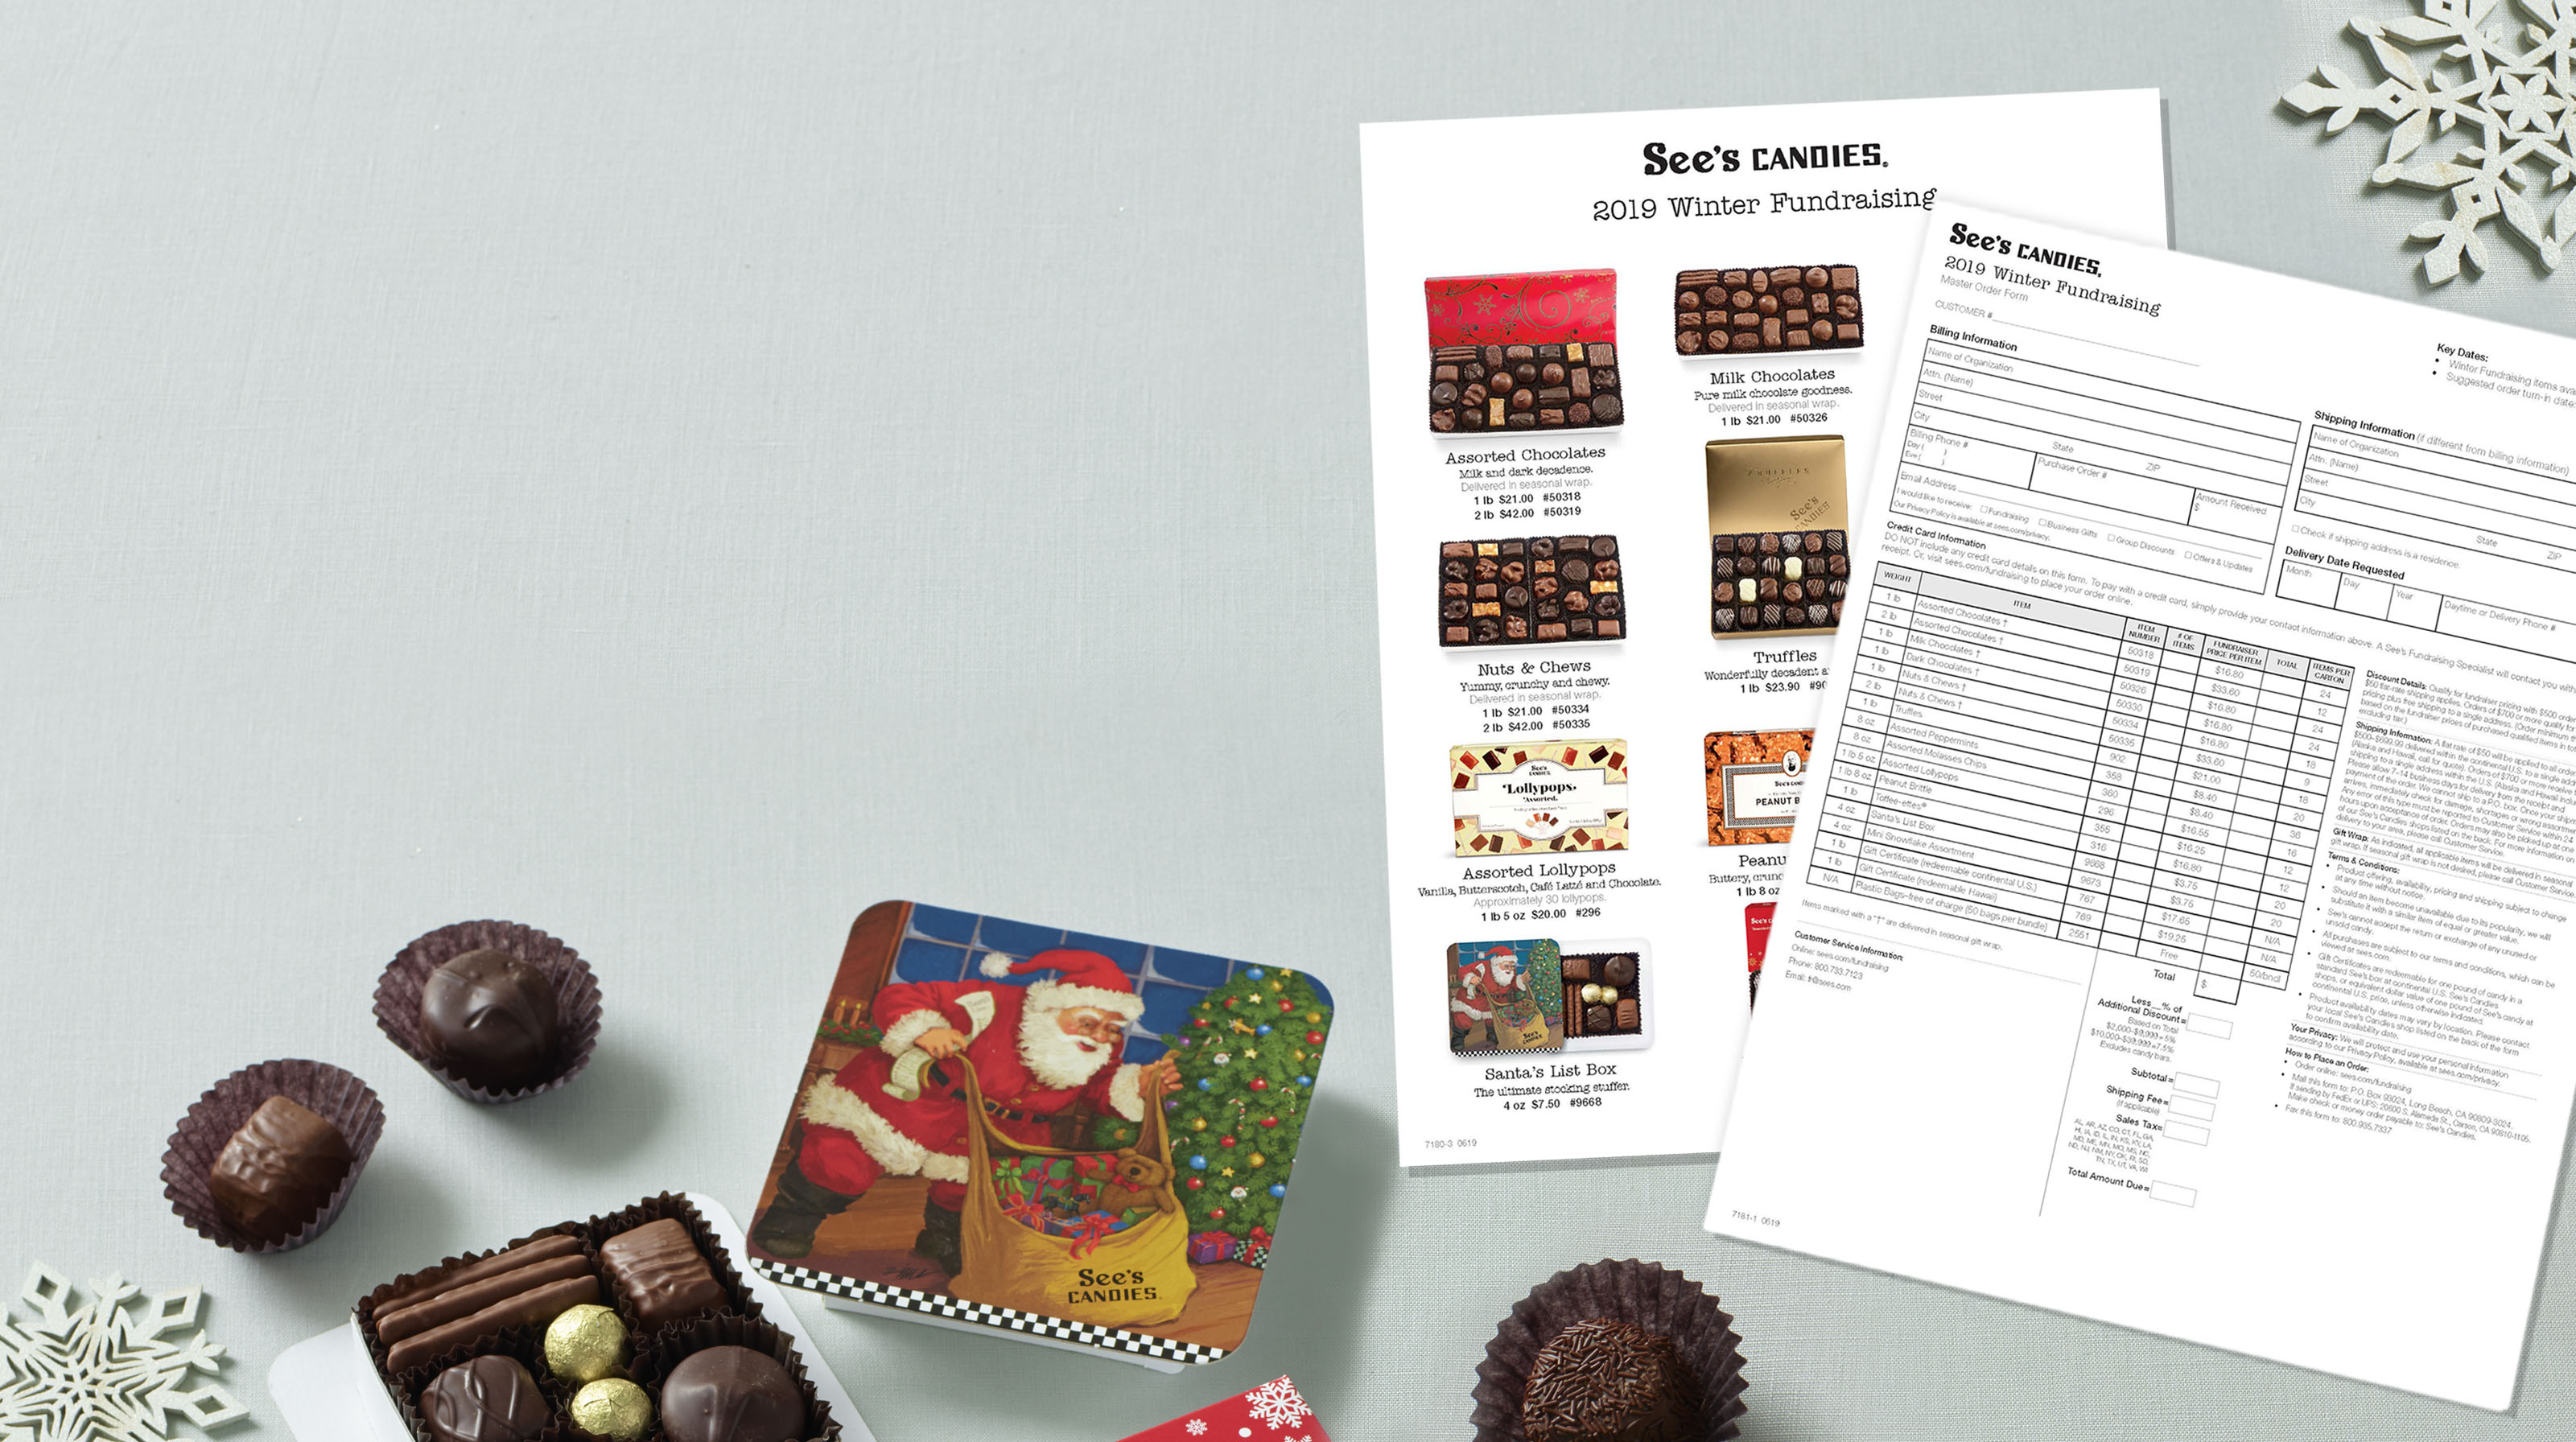 Chocolate & Candy Fundraising | See's Candies Fundraisers